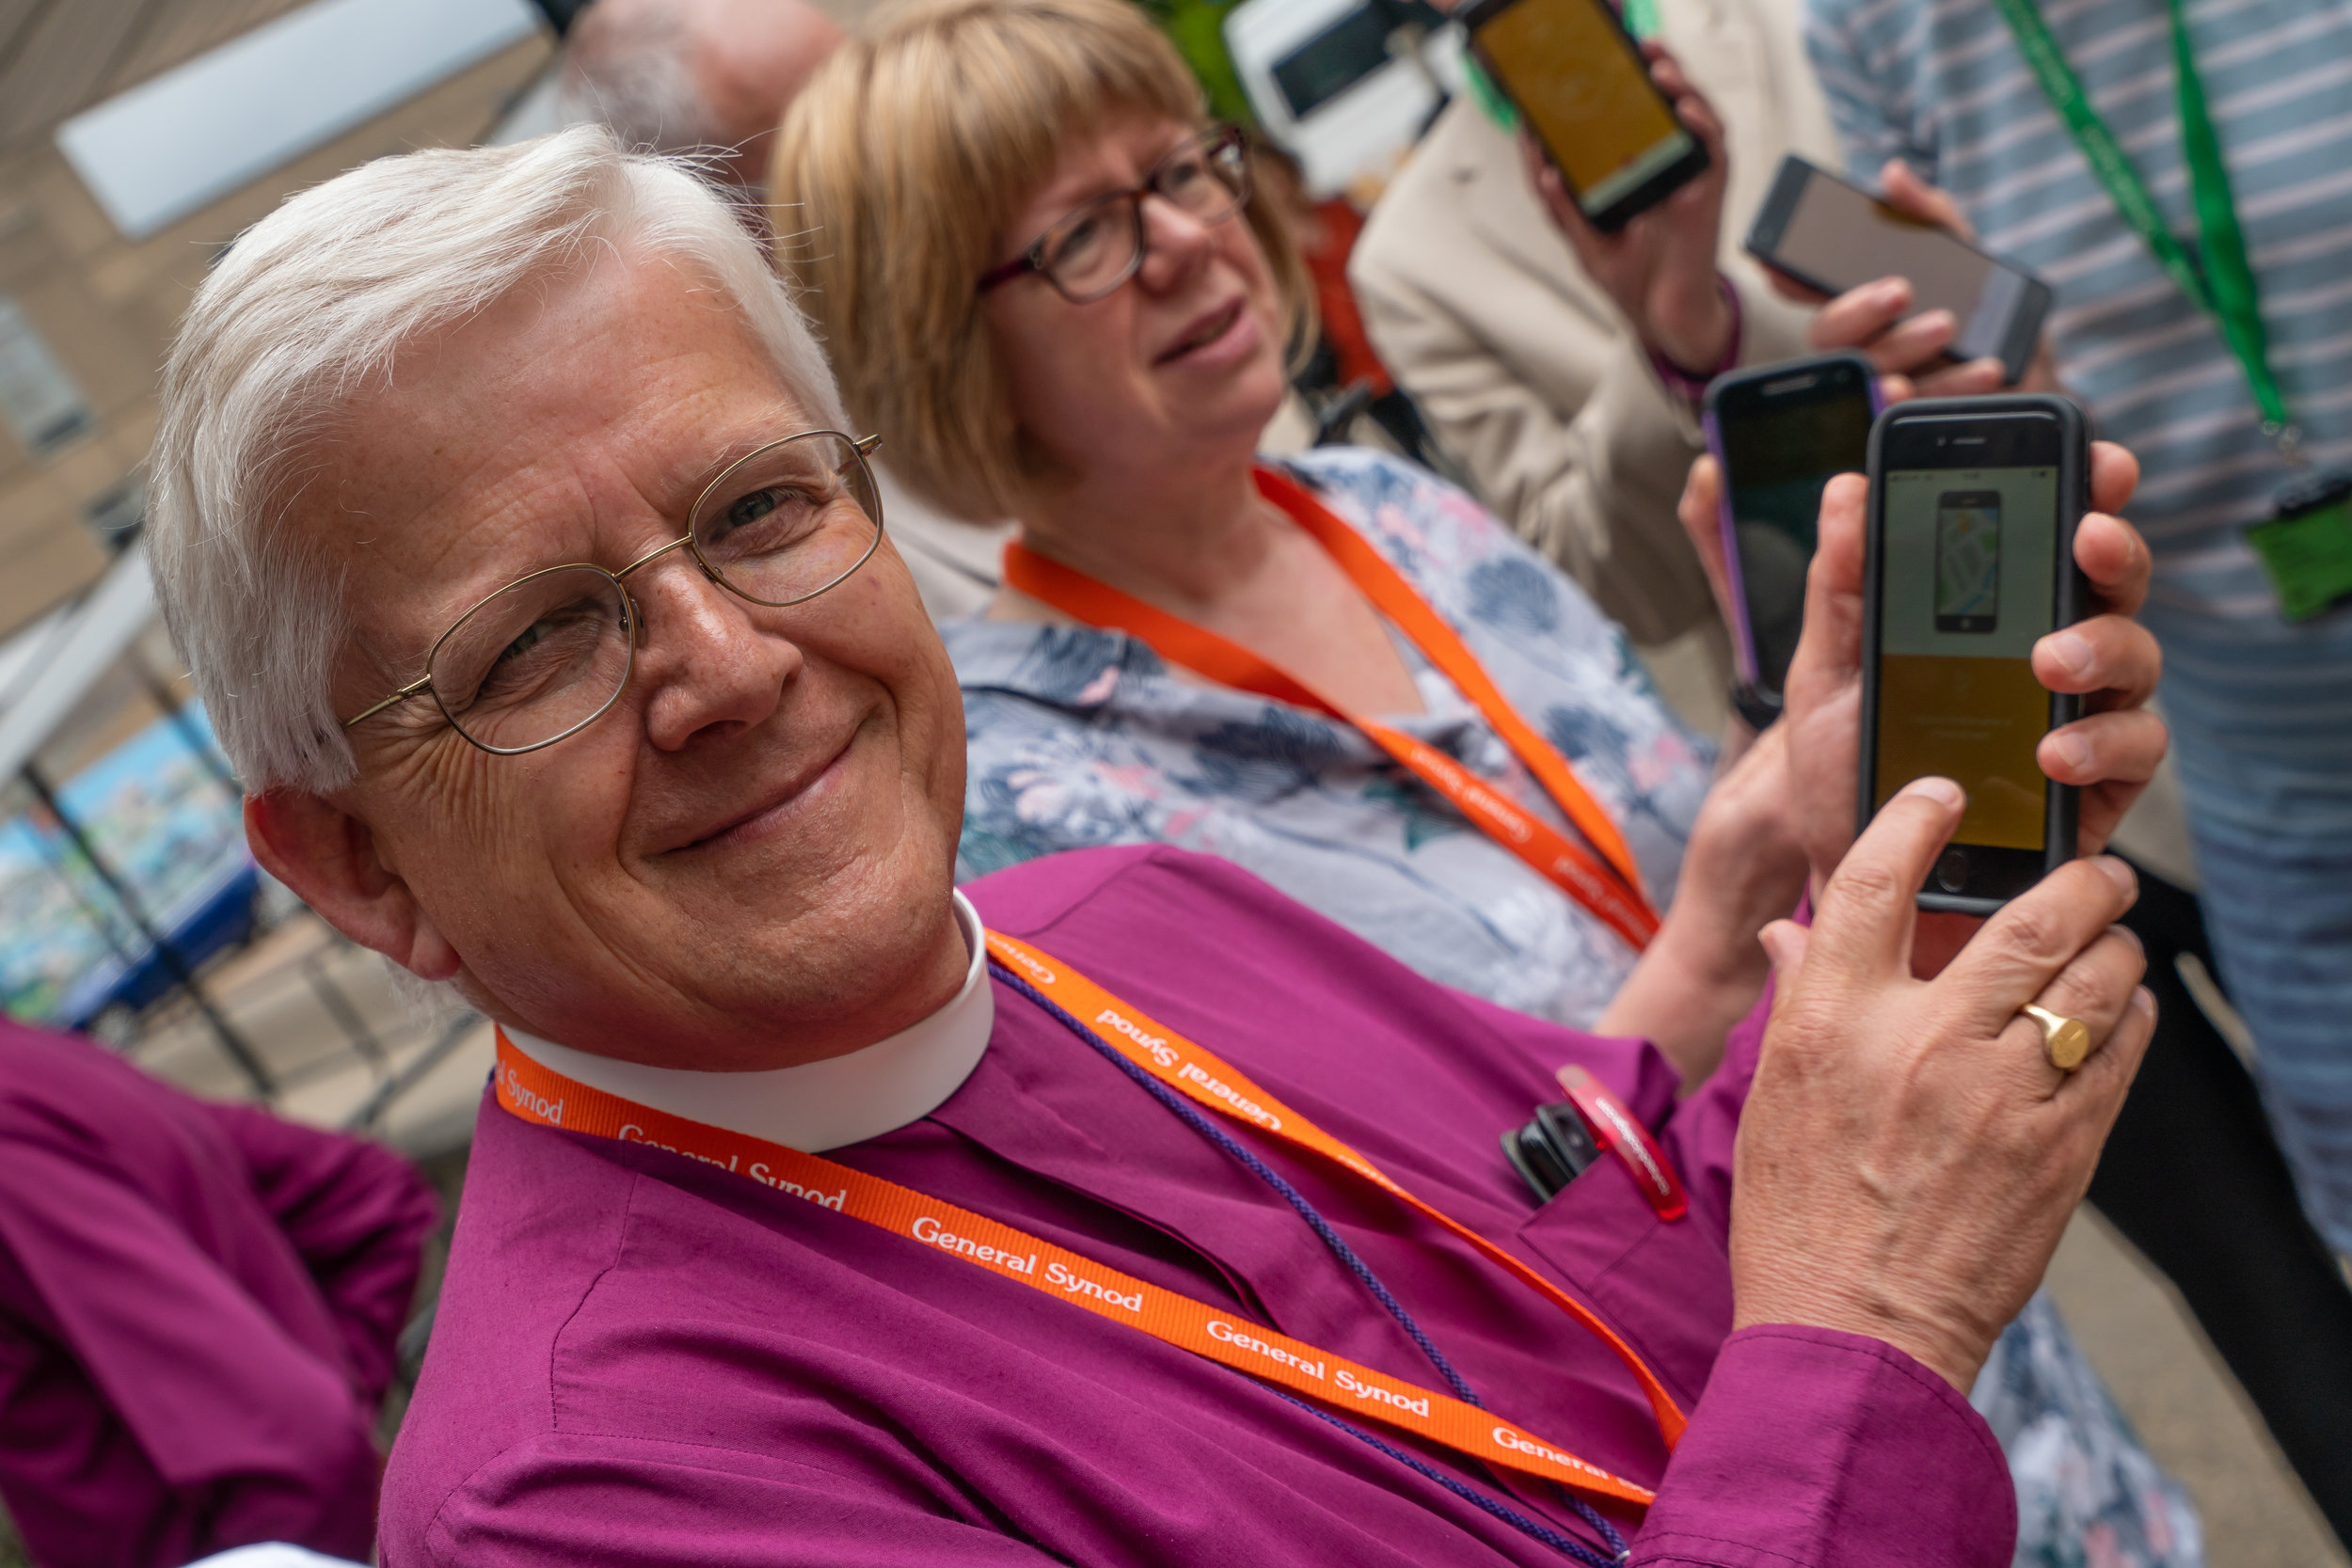 The Bishops of Blackburn and London try out the app